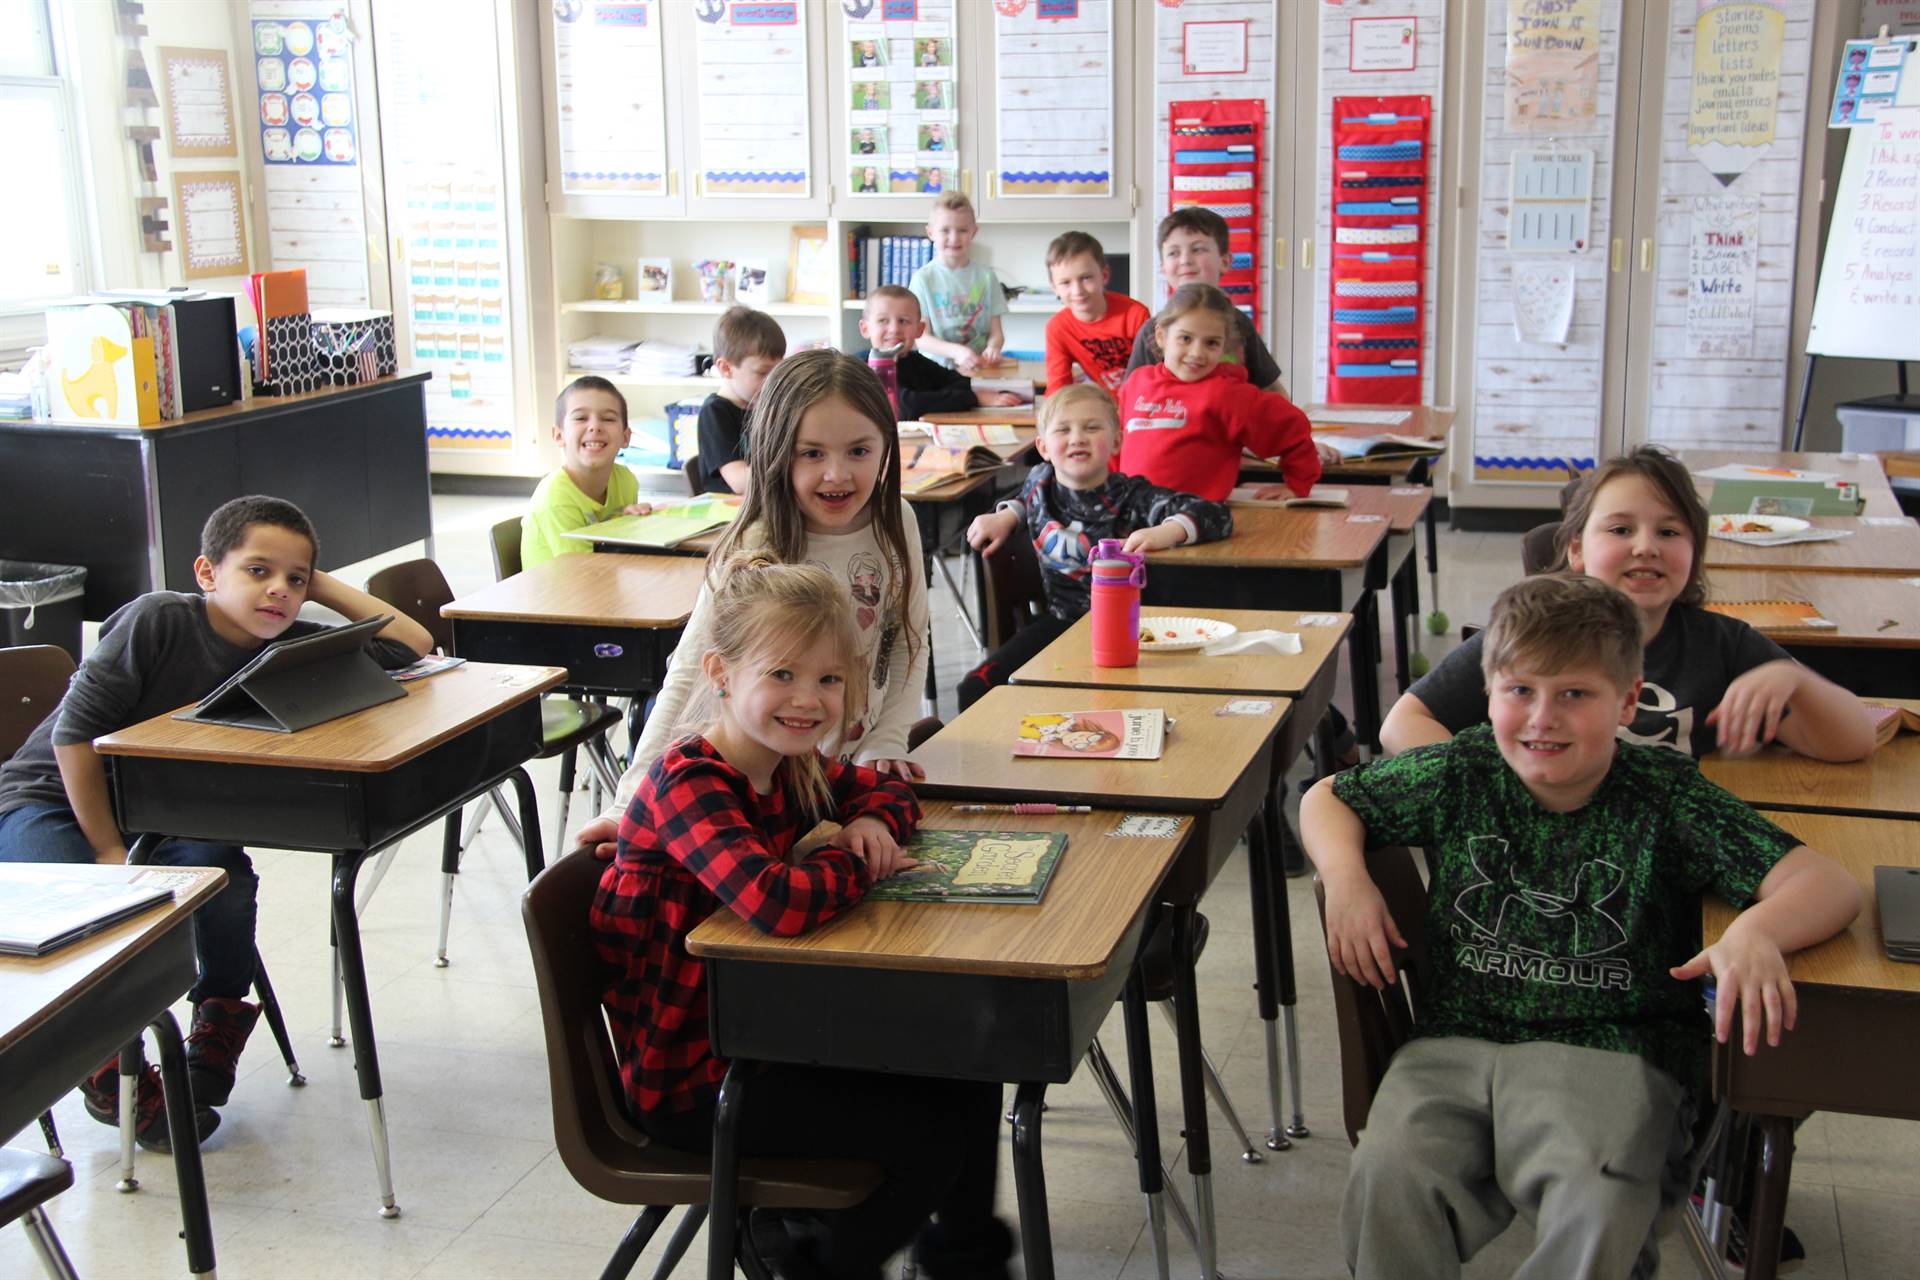 another second grade class smiling